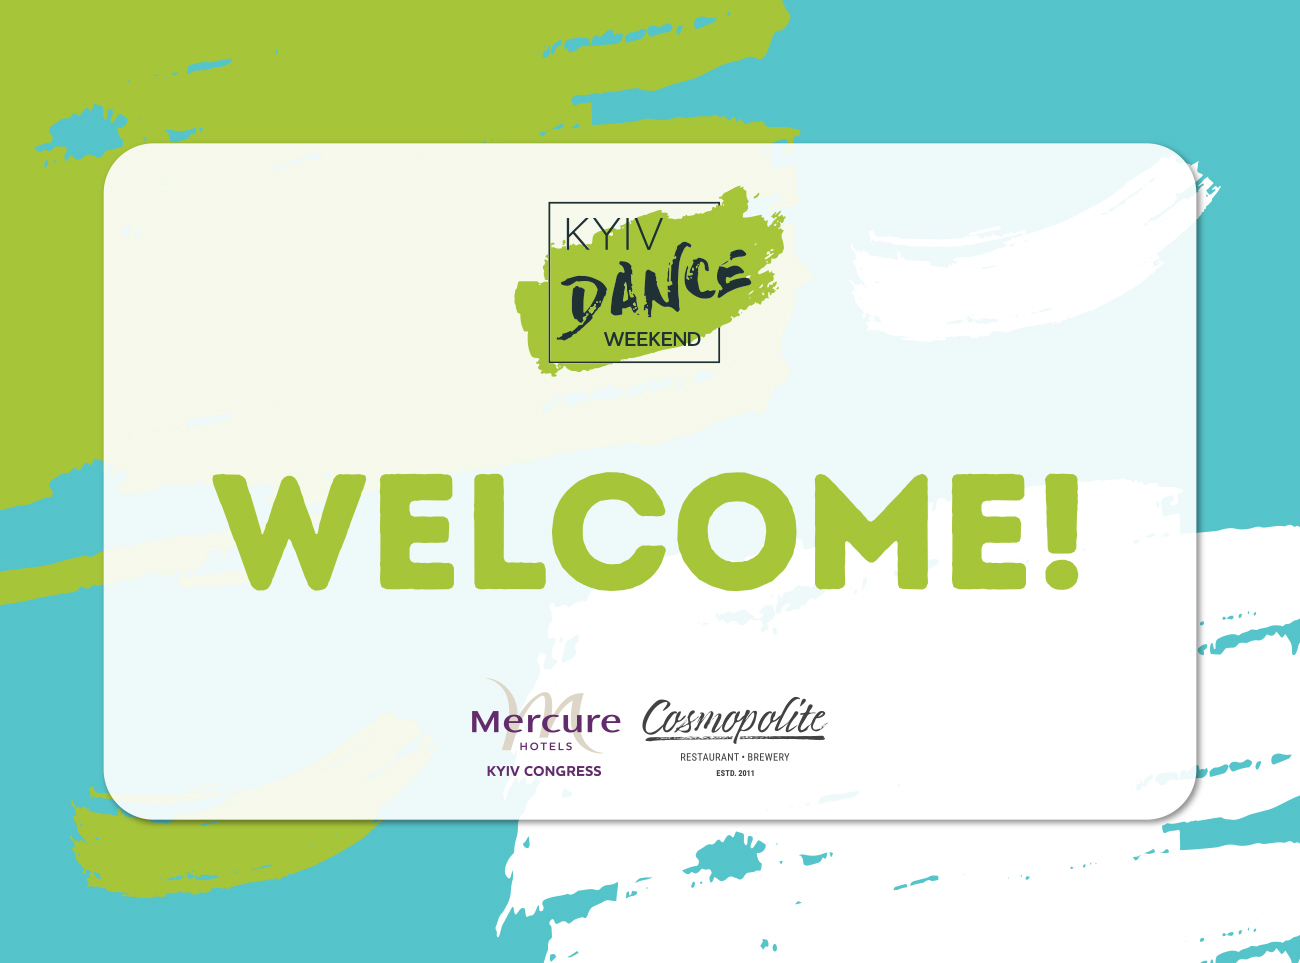 Mercure complex welcomed Kyiv Dance Weekend